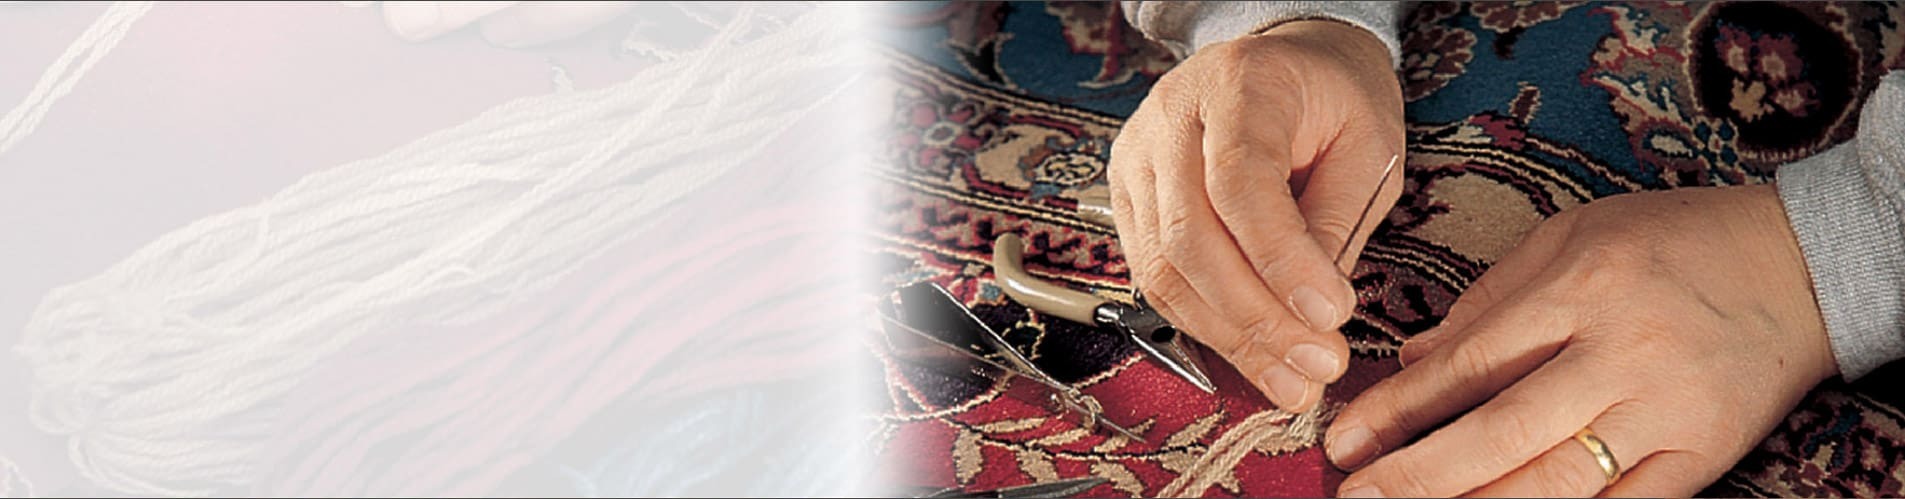 Rug-Repair-Philadelphia-Slider-1